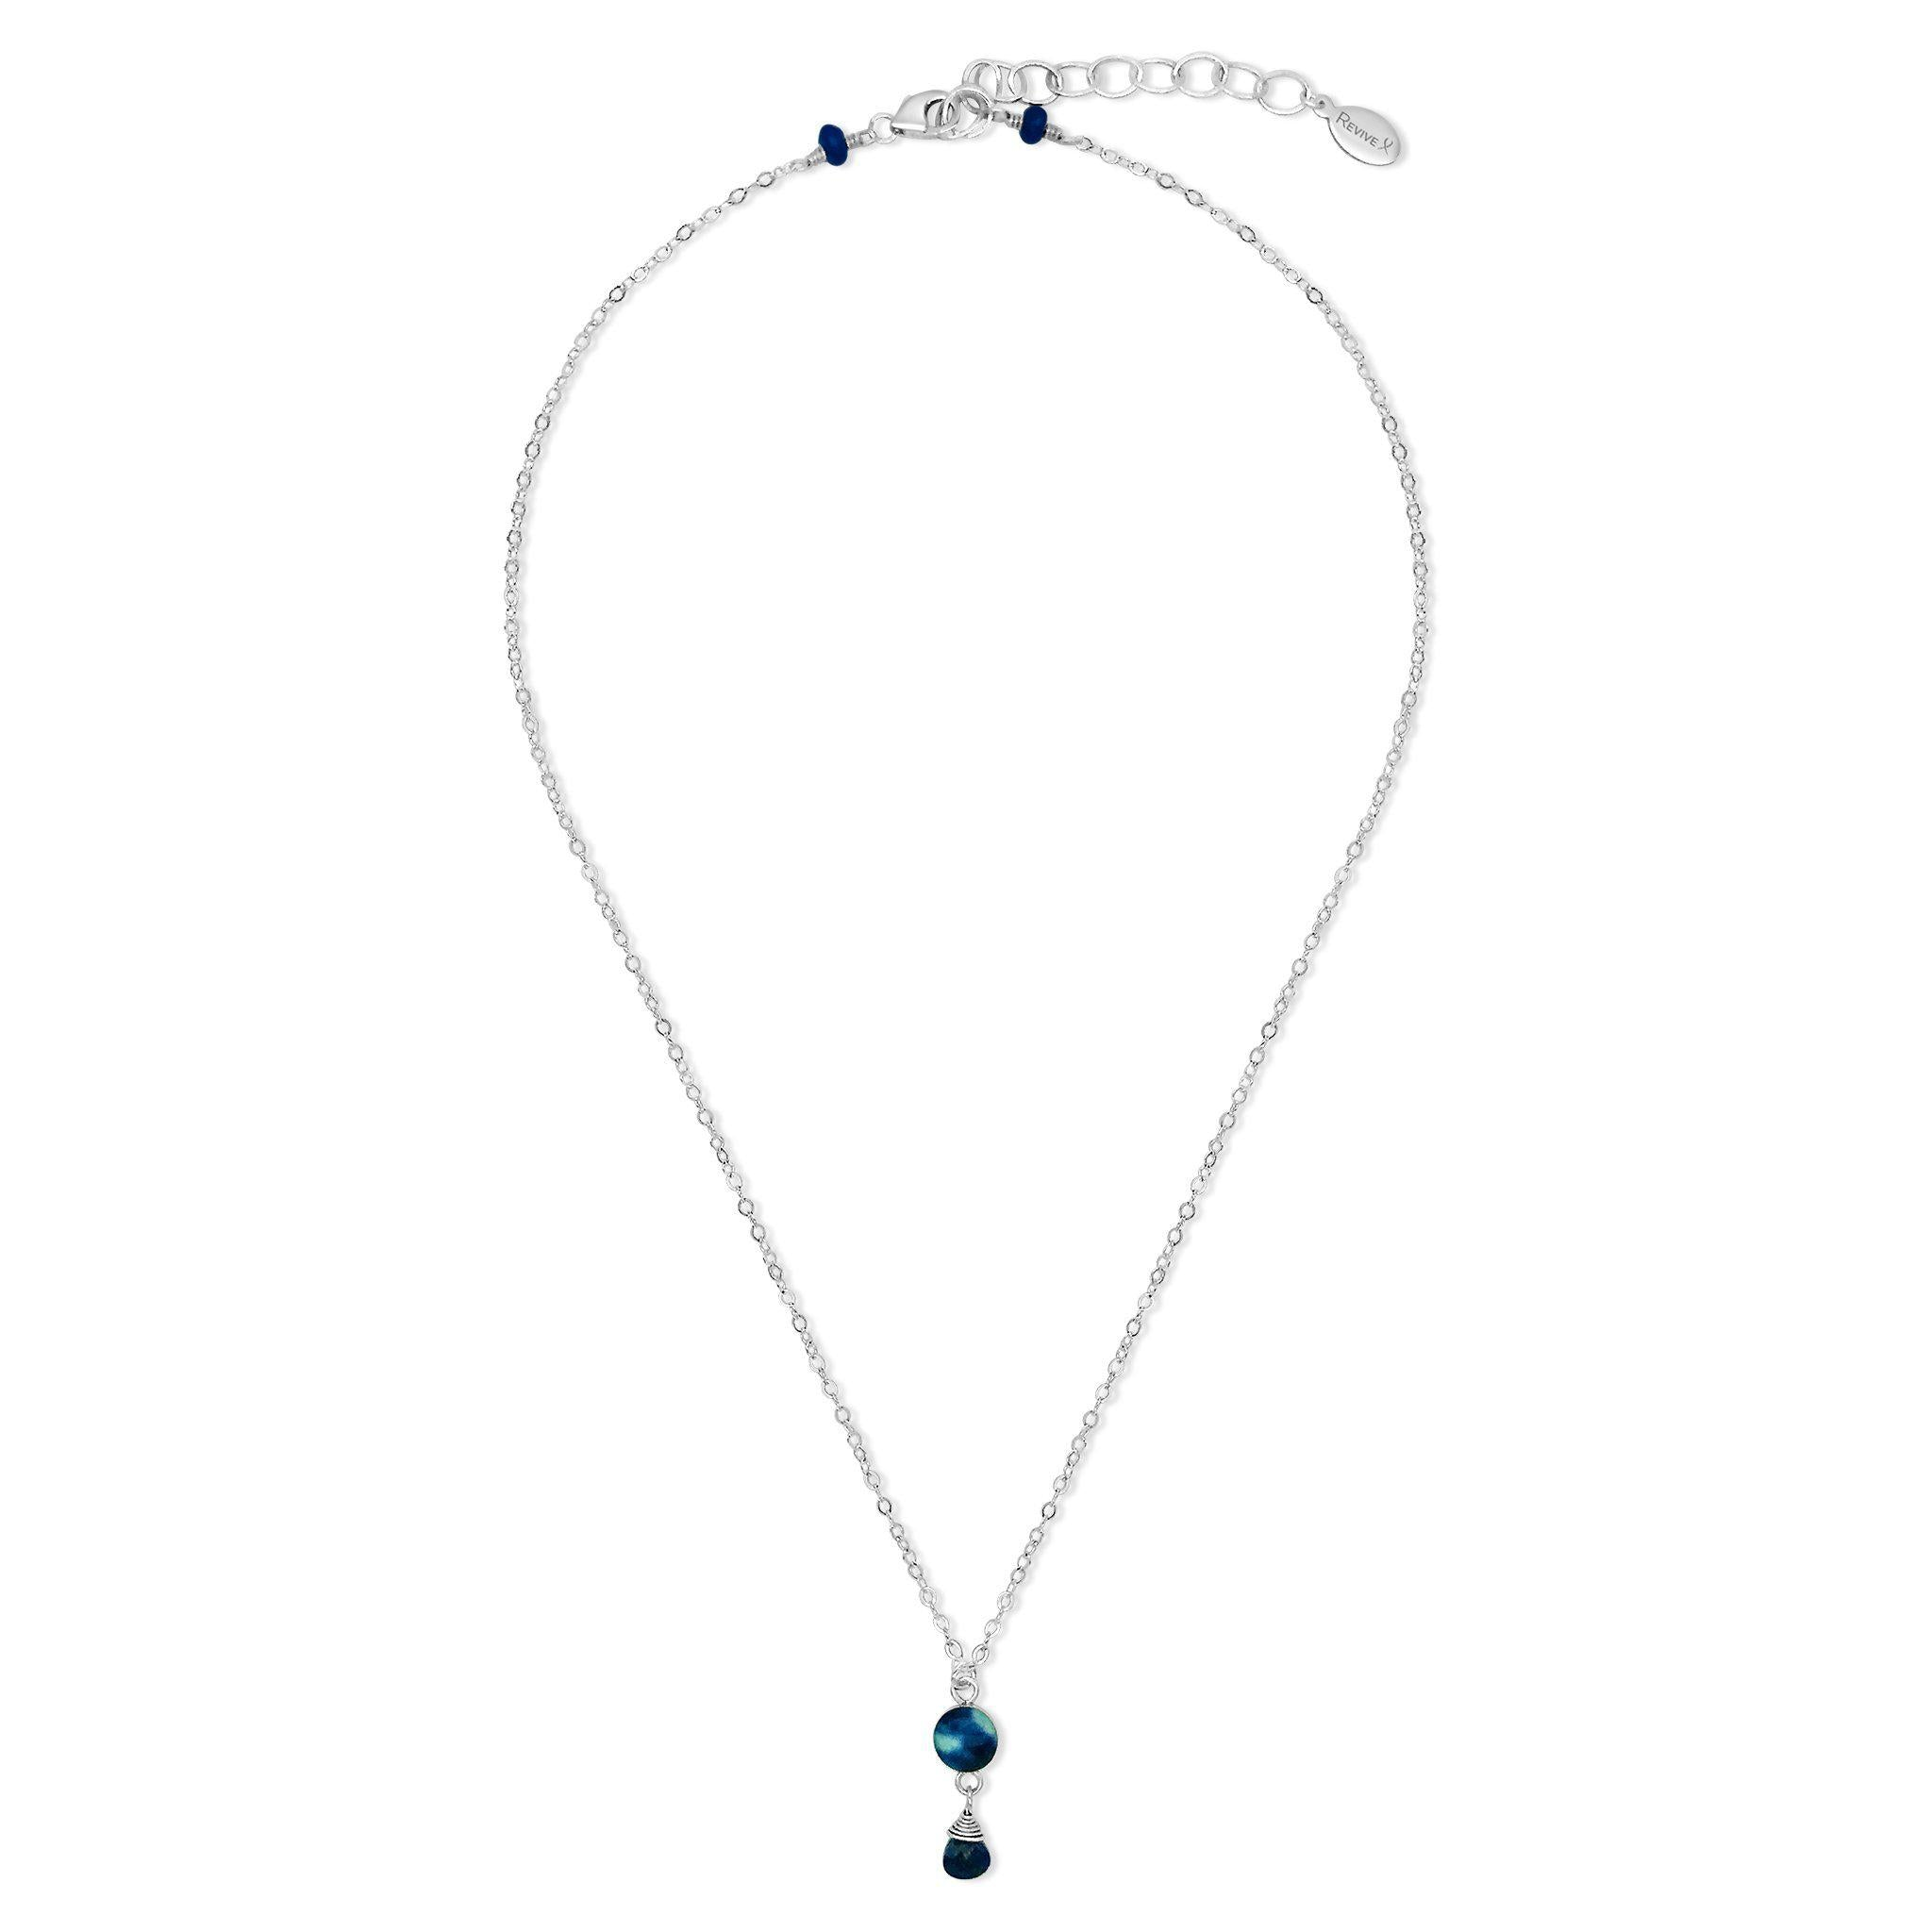 Sterling silver adjustable thin short chain with small round pendant containing a cell image of neuroblastoma under resin and a lapis stone dangle from the pendant to help fund childhood cancer research